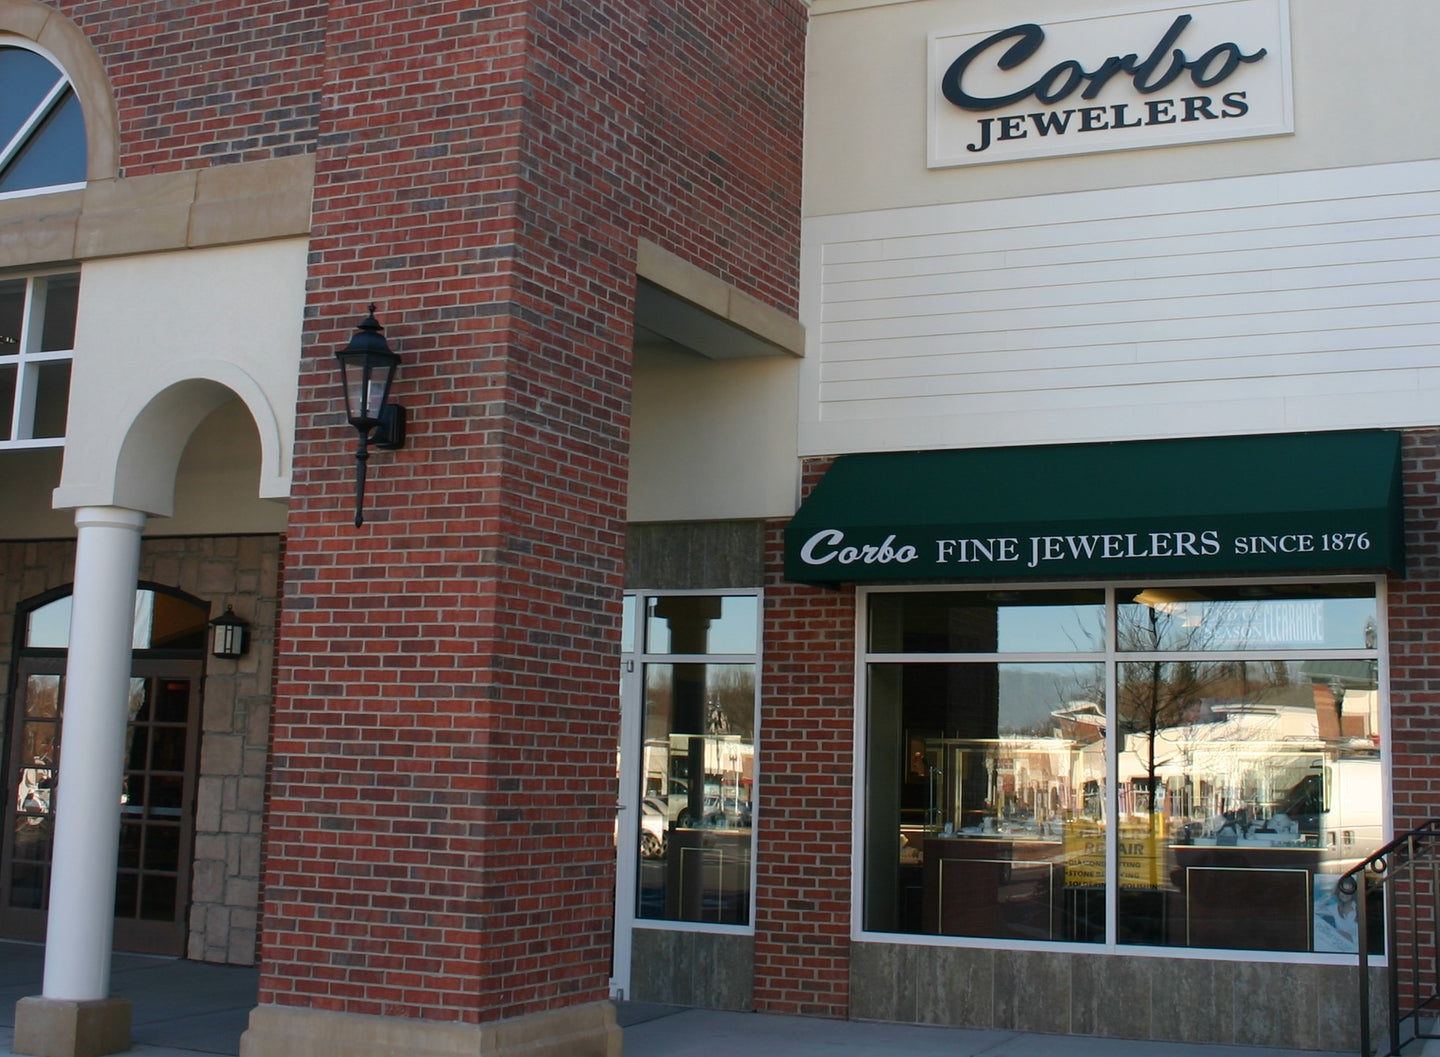 Corbo Jewelers Chester, NJ